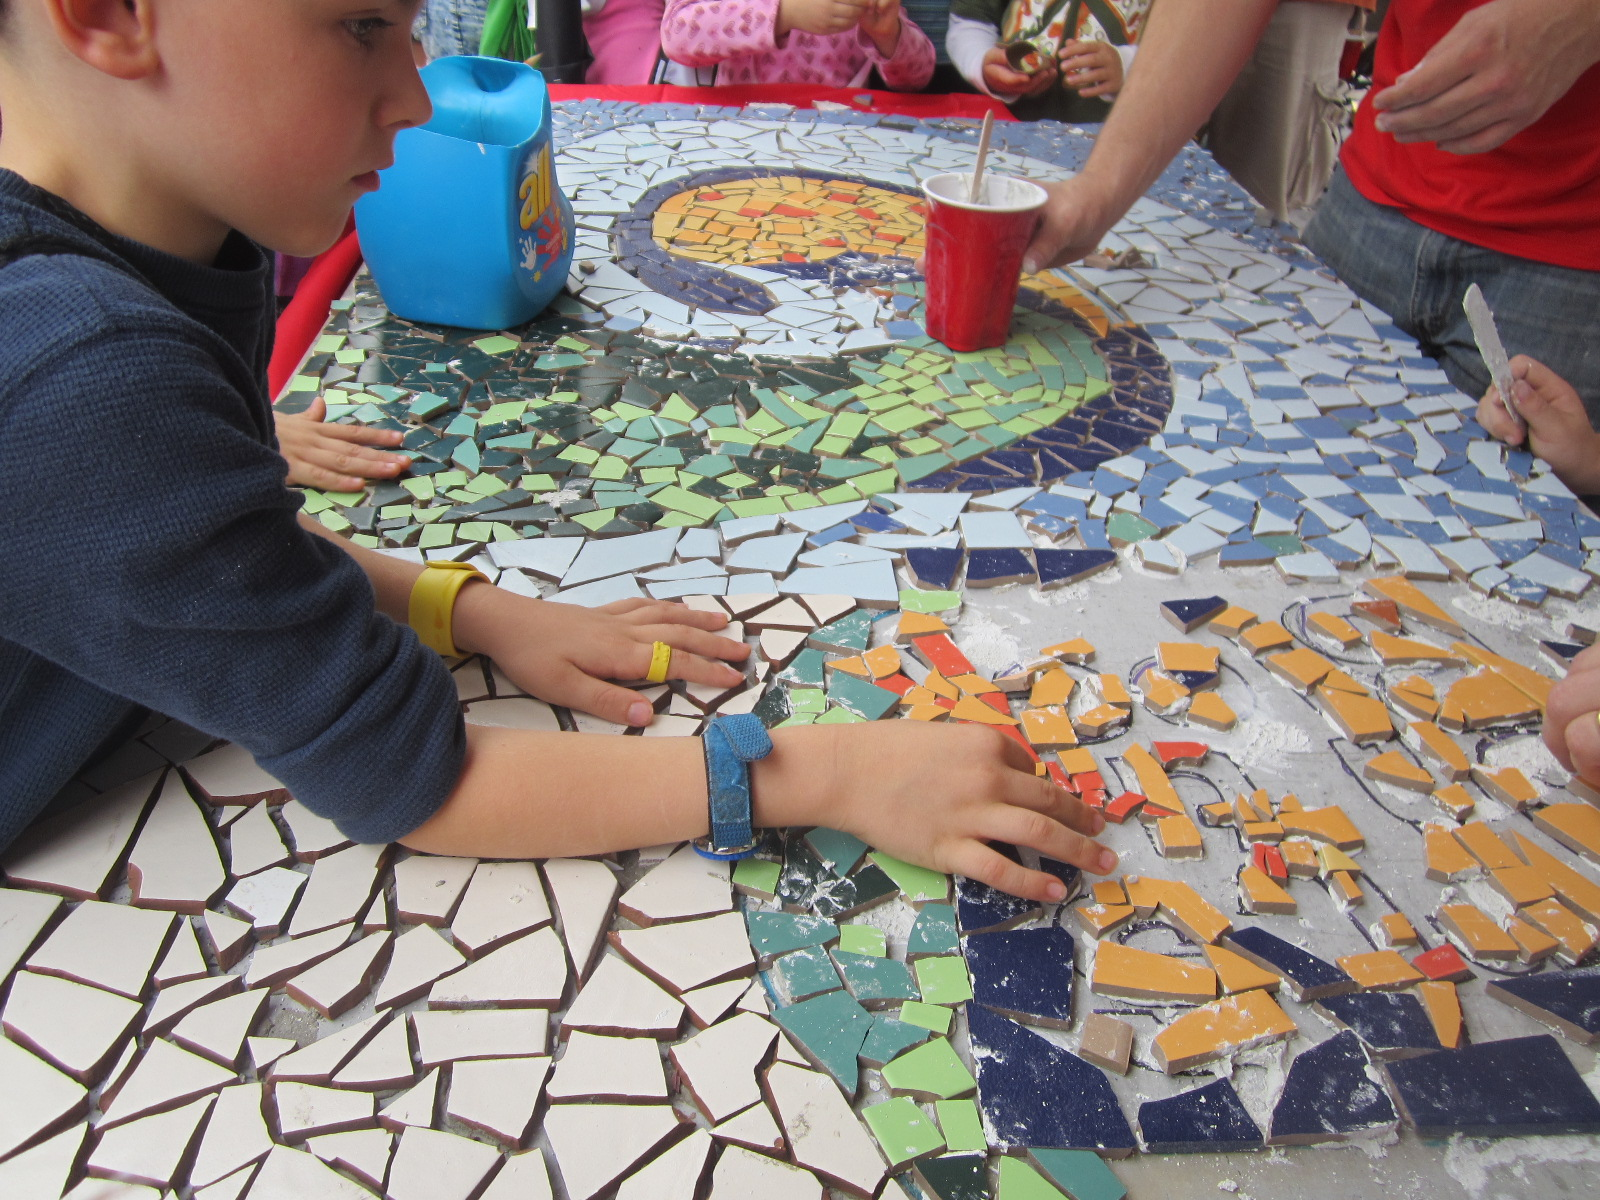 Making a mosaic at the Silver Spring Maker Faire